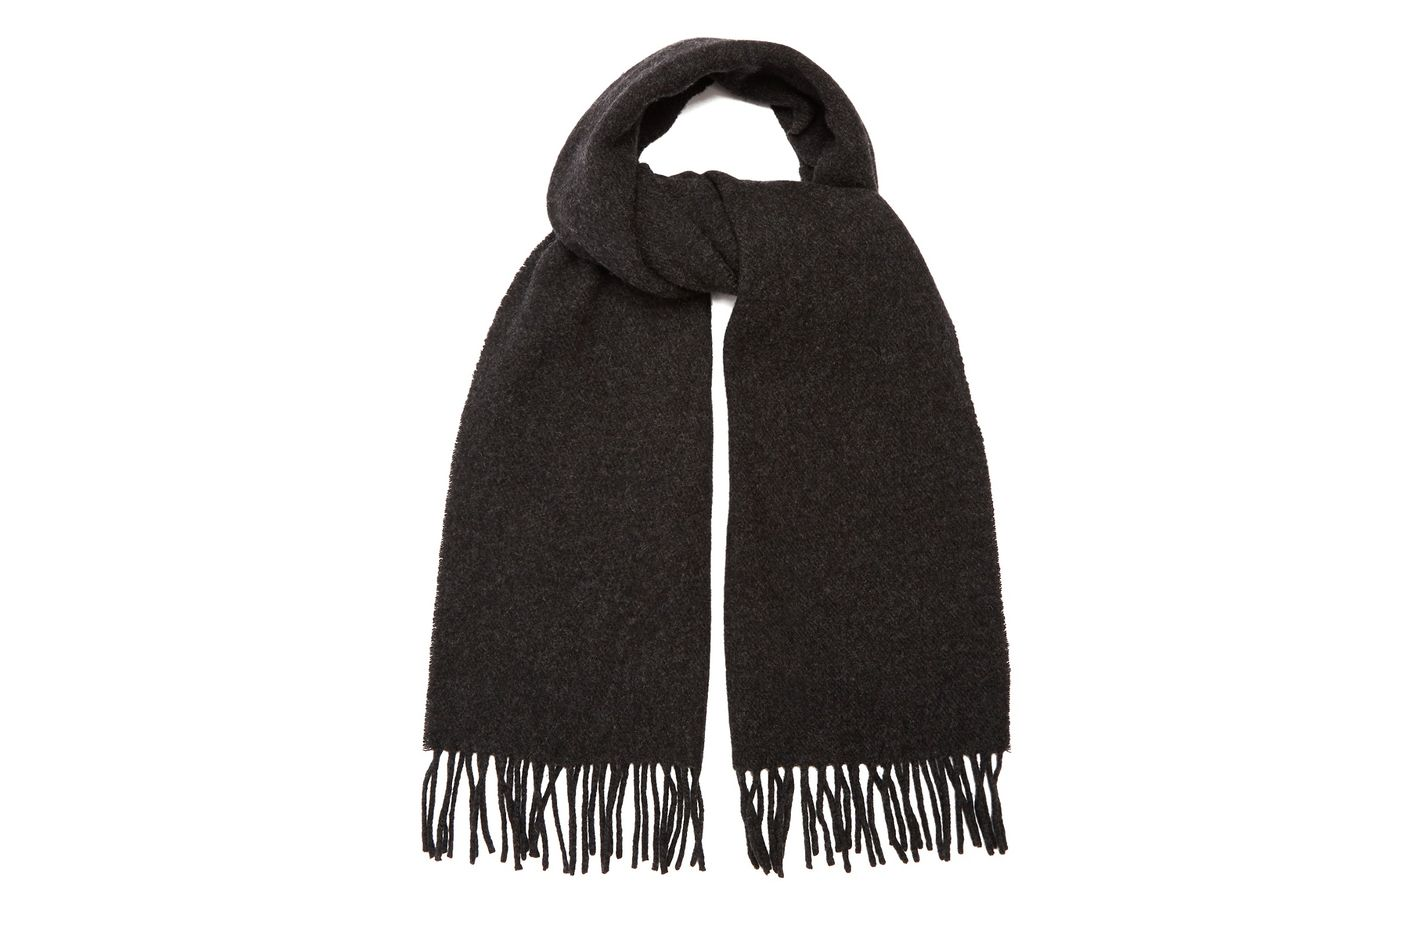 A.P.C. Fringed Wool Scarf